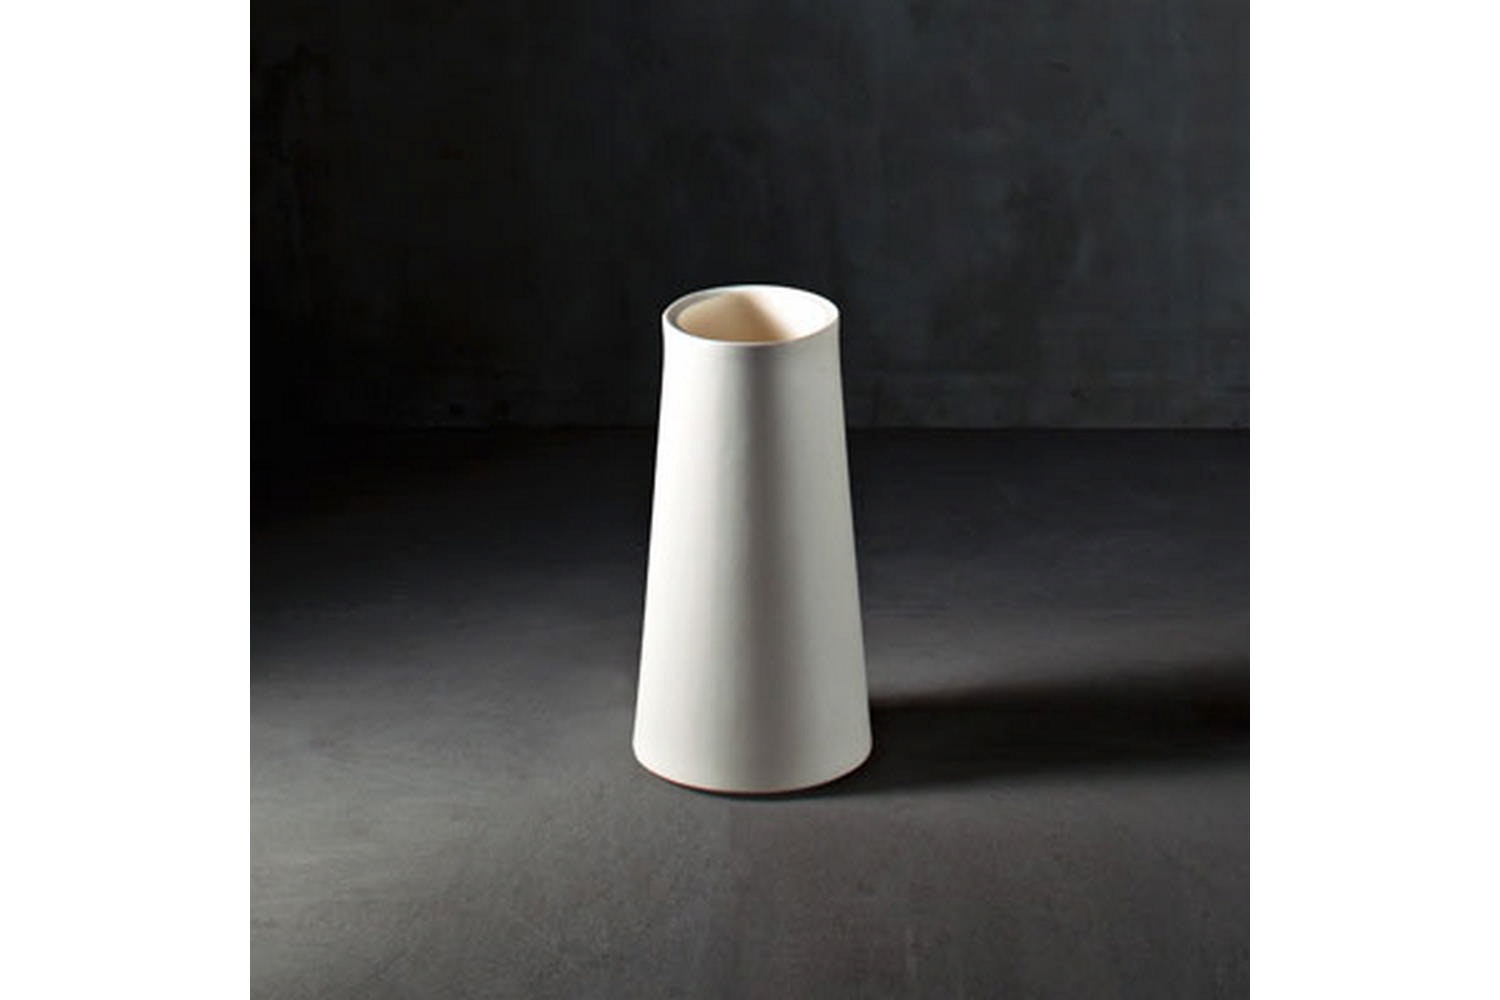 Giano Umbrella Stand by Luisa Bocchietto for Serralunga